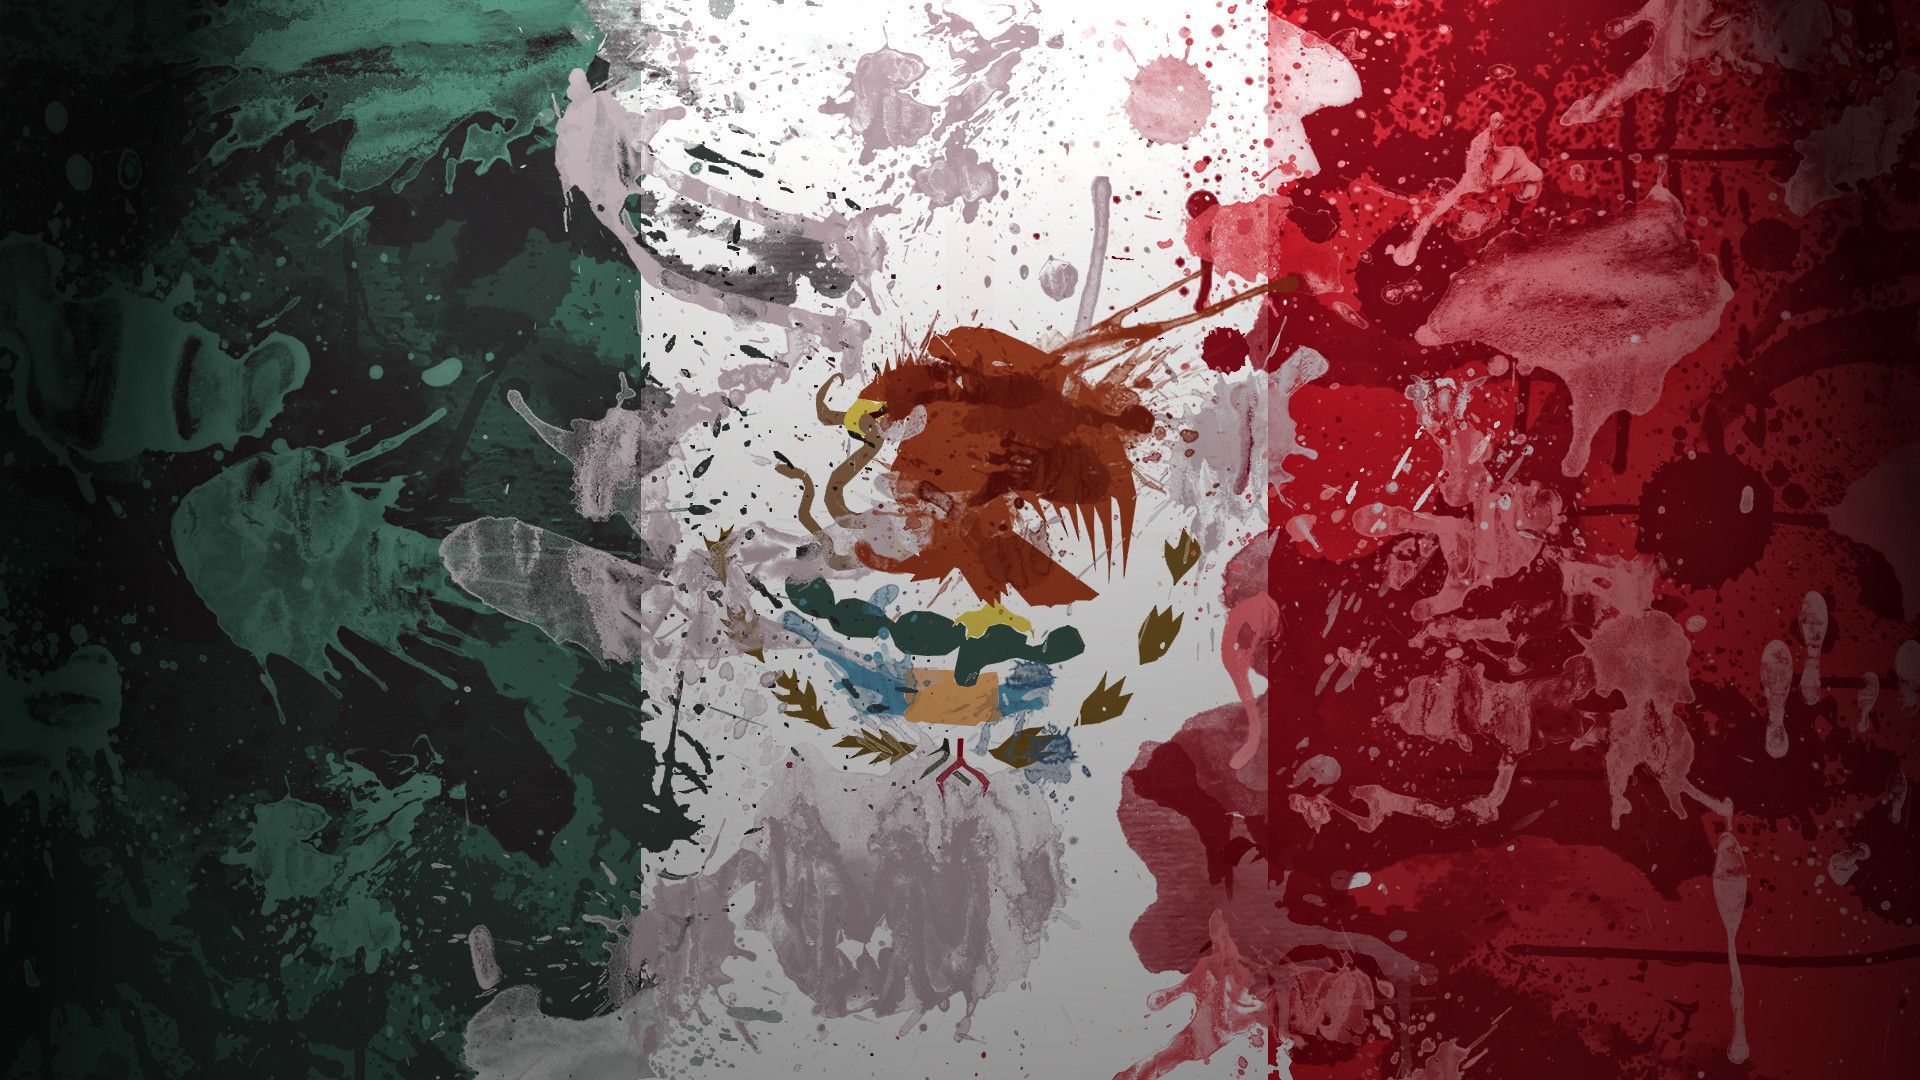 hd cool mexican desktop wallpapers | wallpaper.wiki